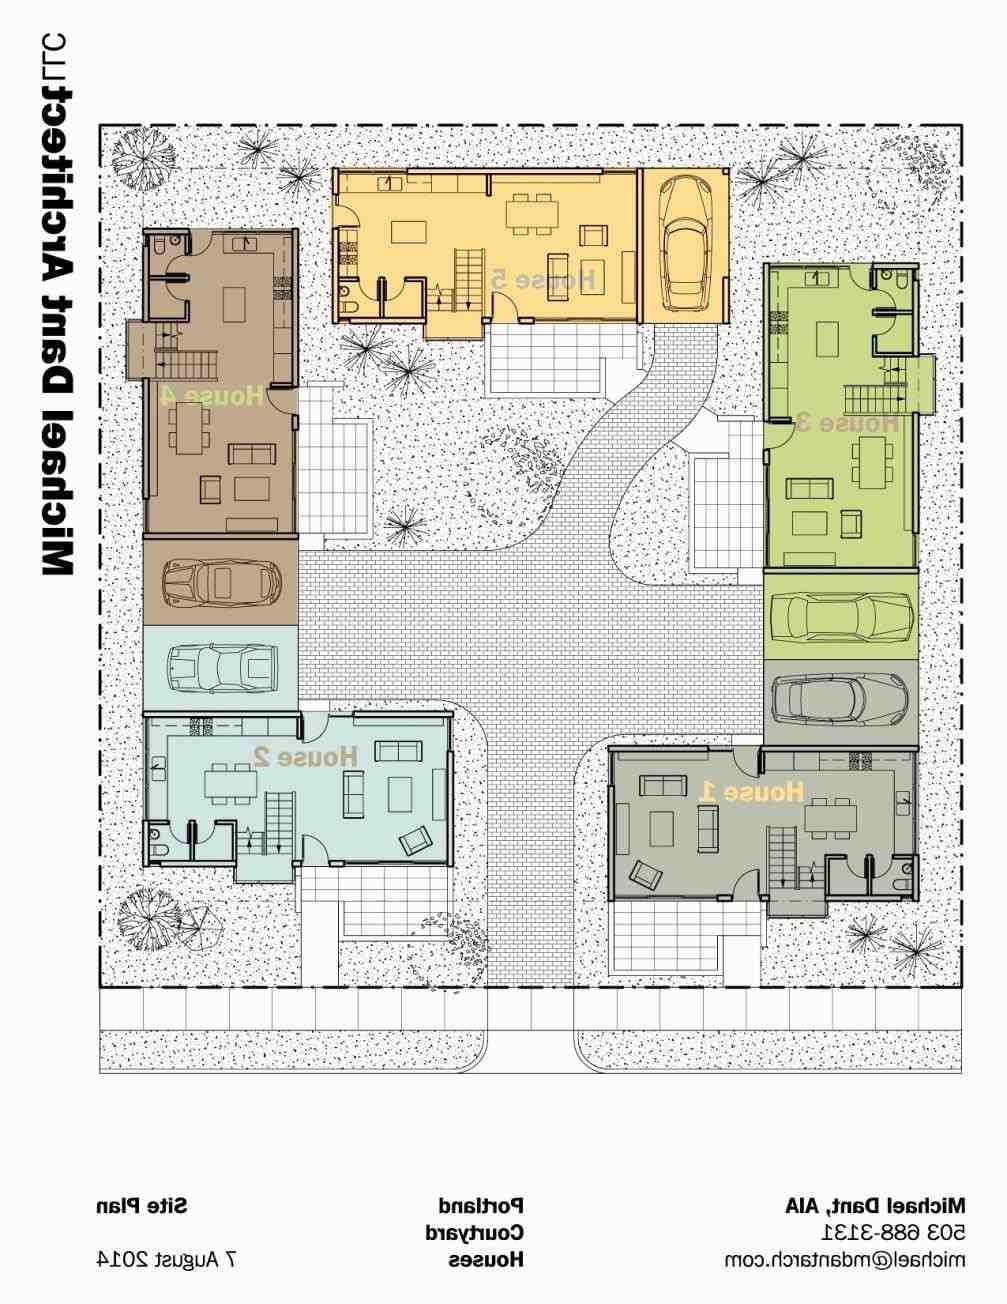 Hacienda House Plans Courtyard By Hacienda House Plans Center Courtyard Pool House Plans Courtyard House Plans Ranch House Plans